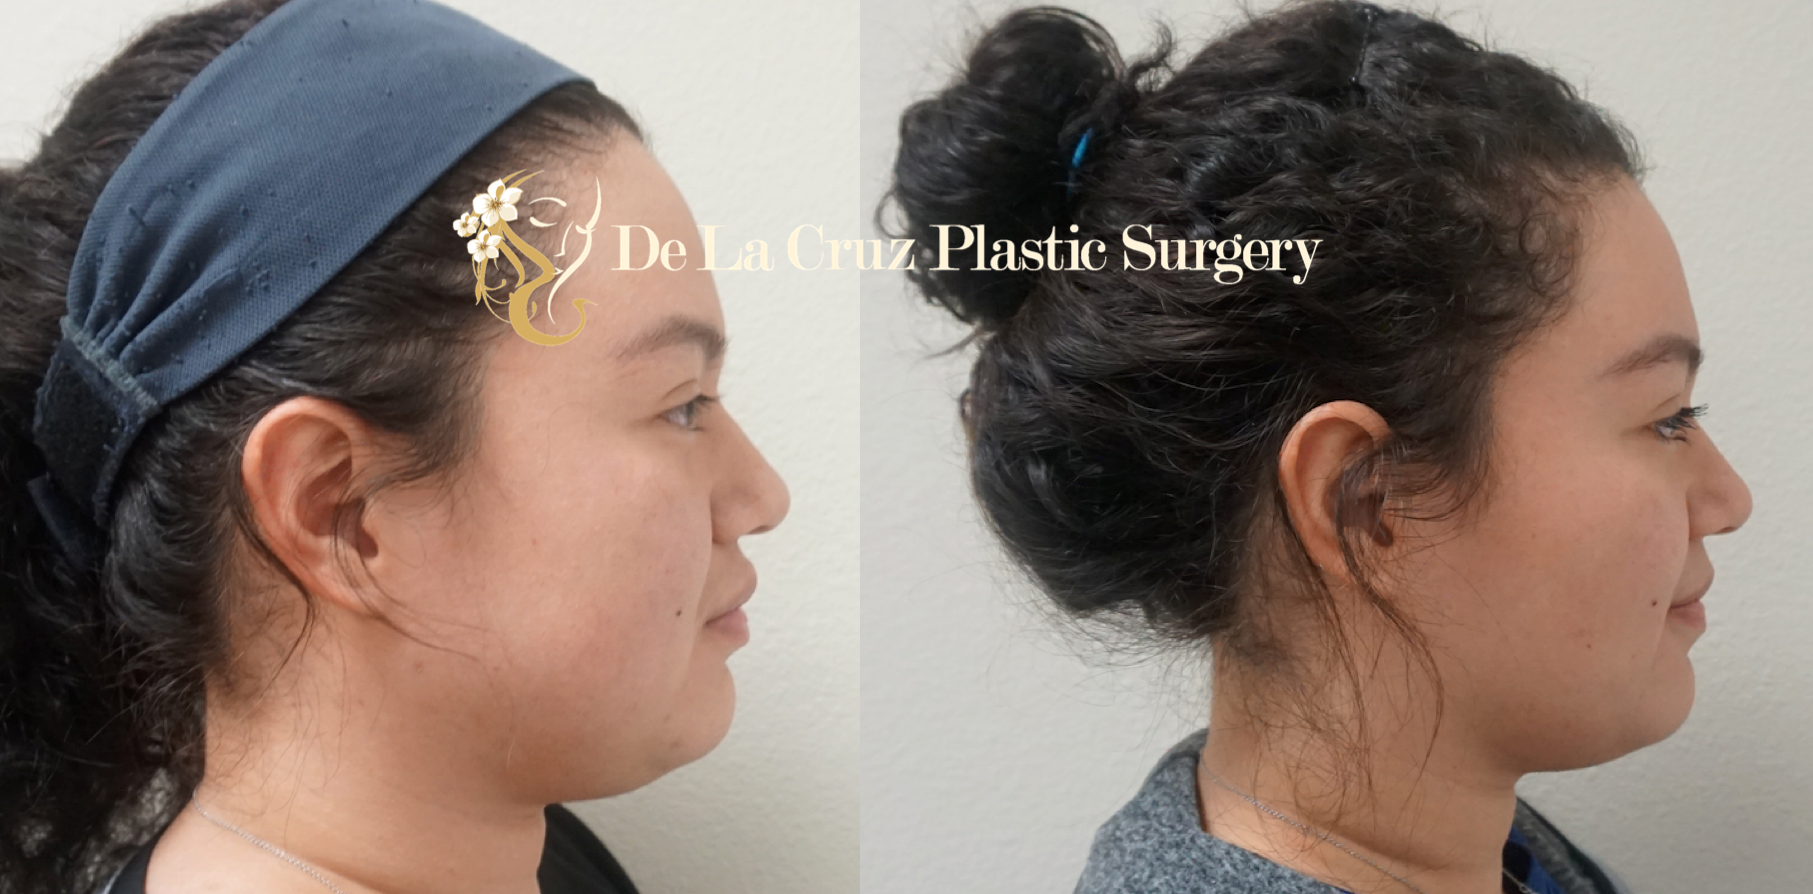 Before and After Photos of   Buccal Fat Removal   (Bichectomia) 8 weeks after surgery performed by Dr, Emmanuel De La Cruz in Houston, Texas.